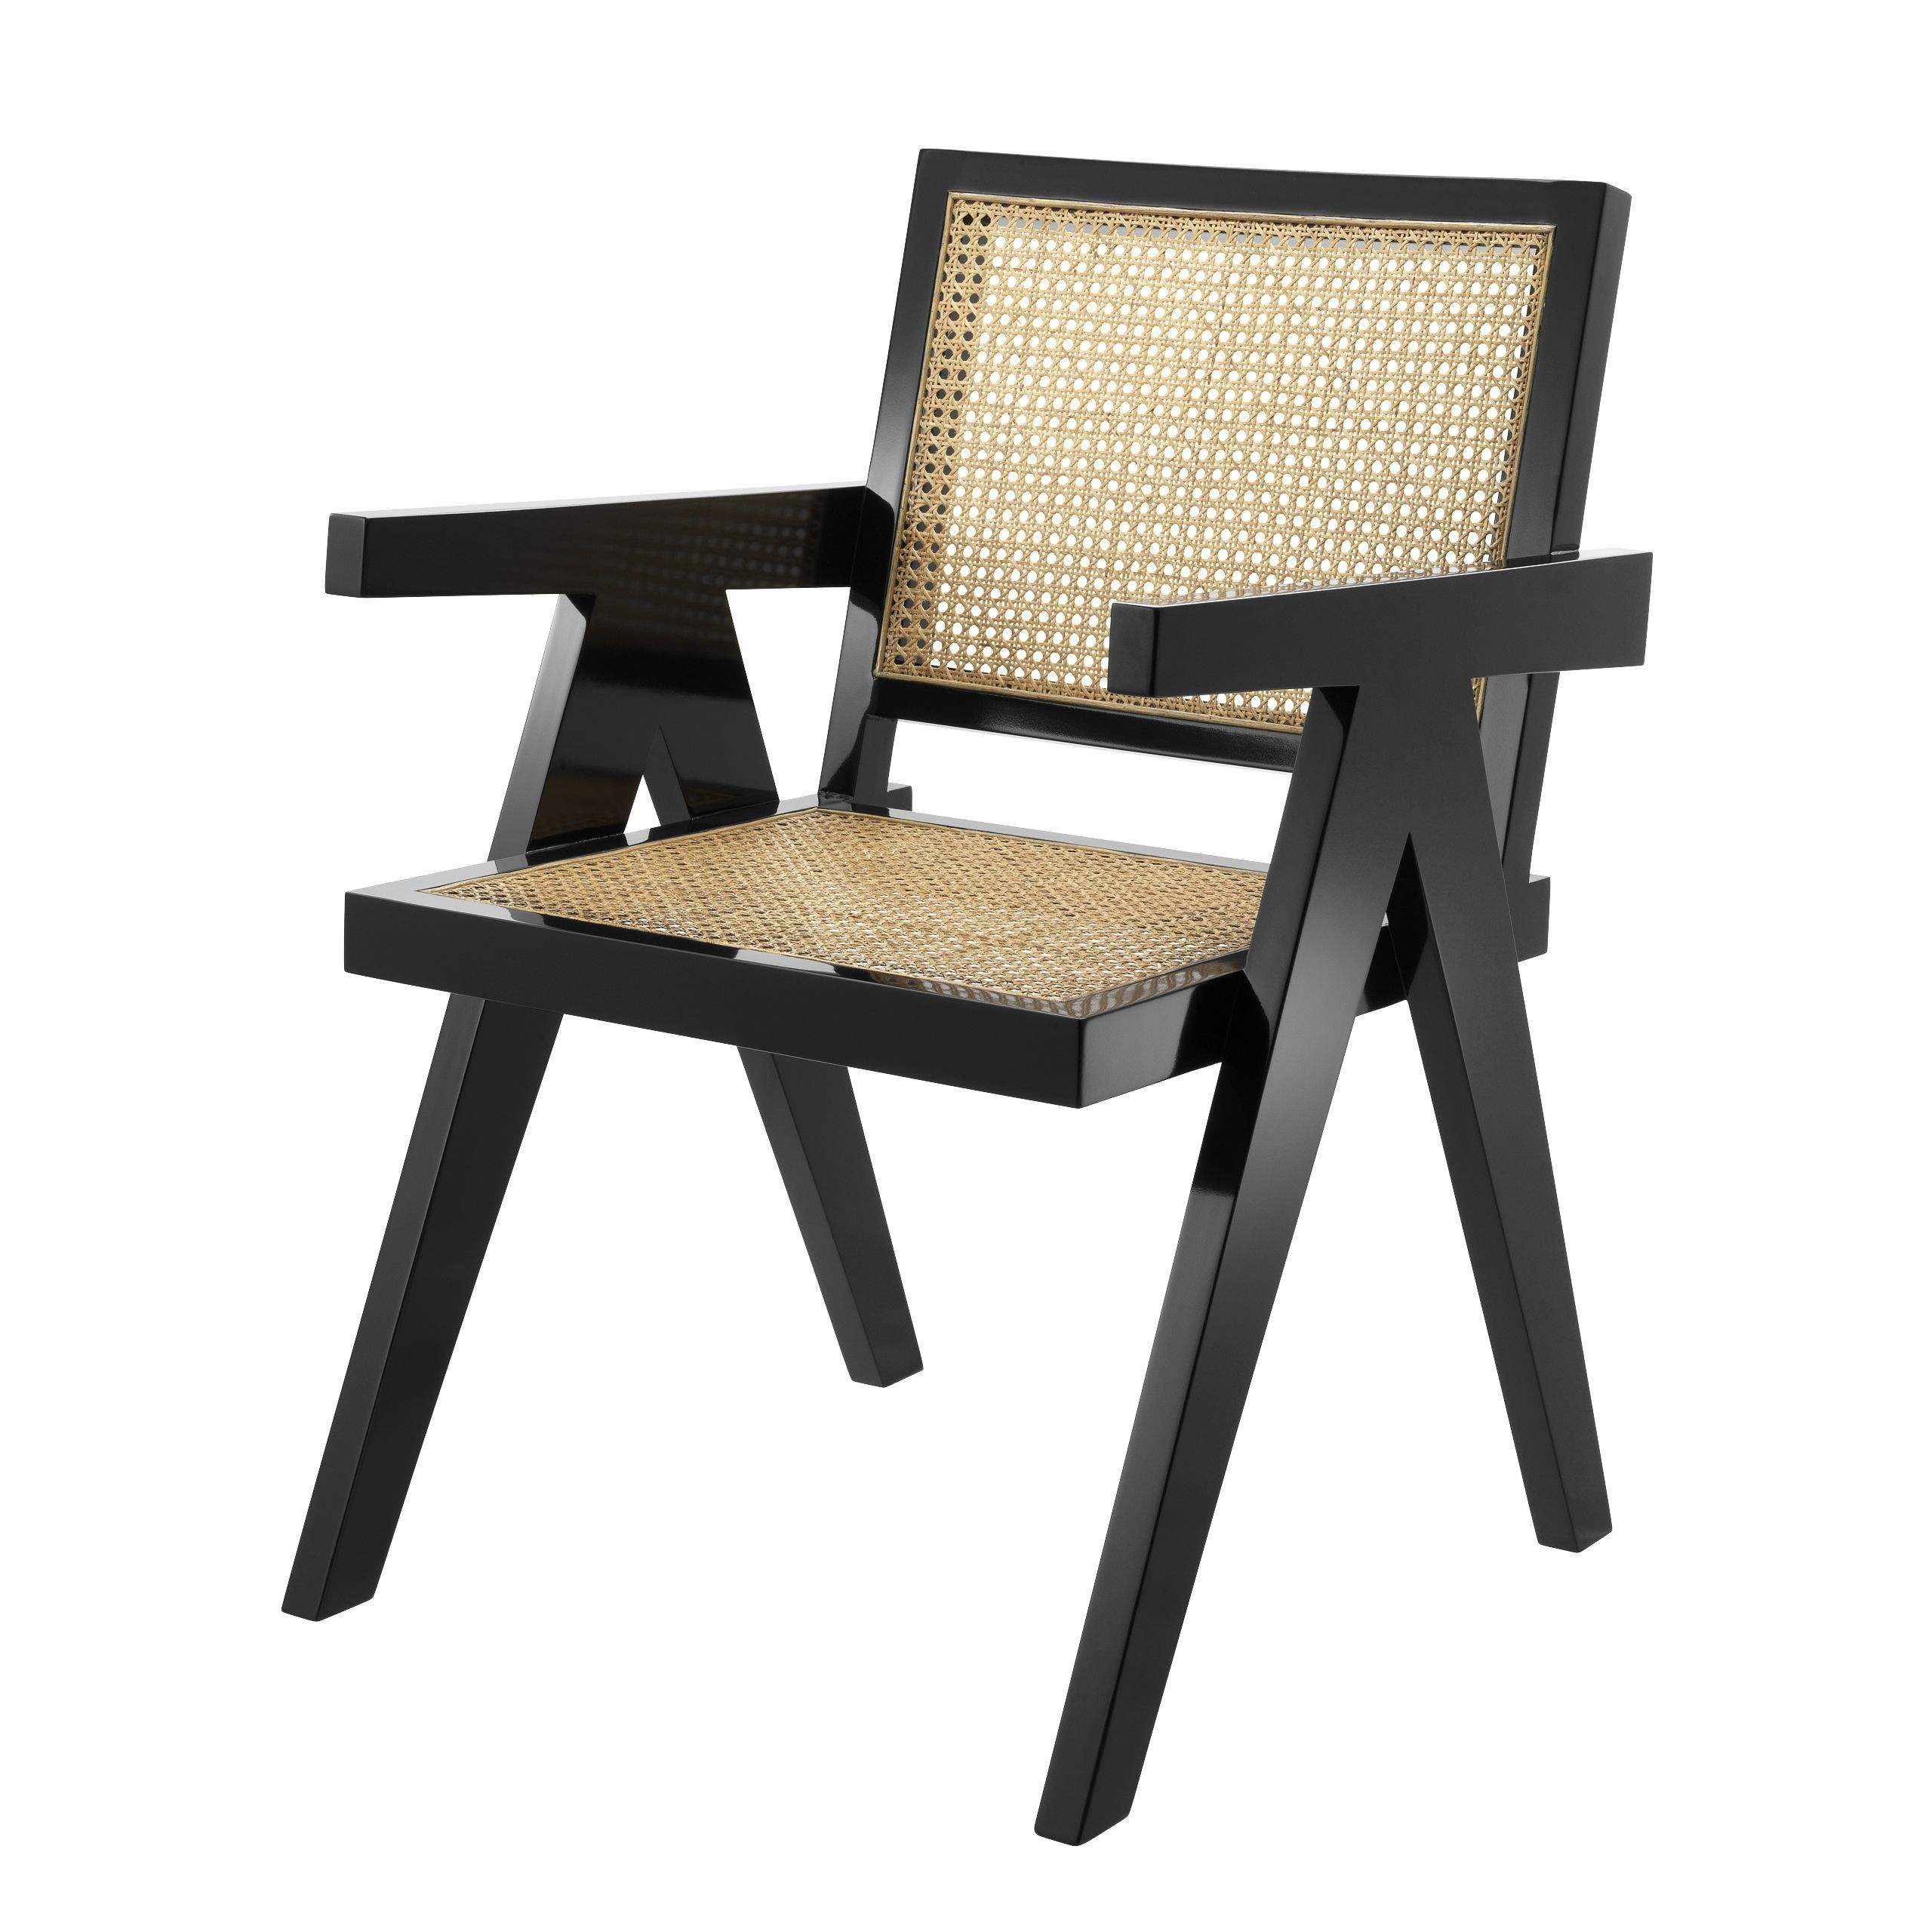 Stylish Tropical Armrest Dining Chair With Natural Cane And Black Finish On Sell